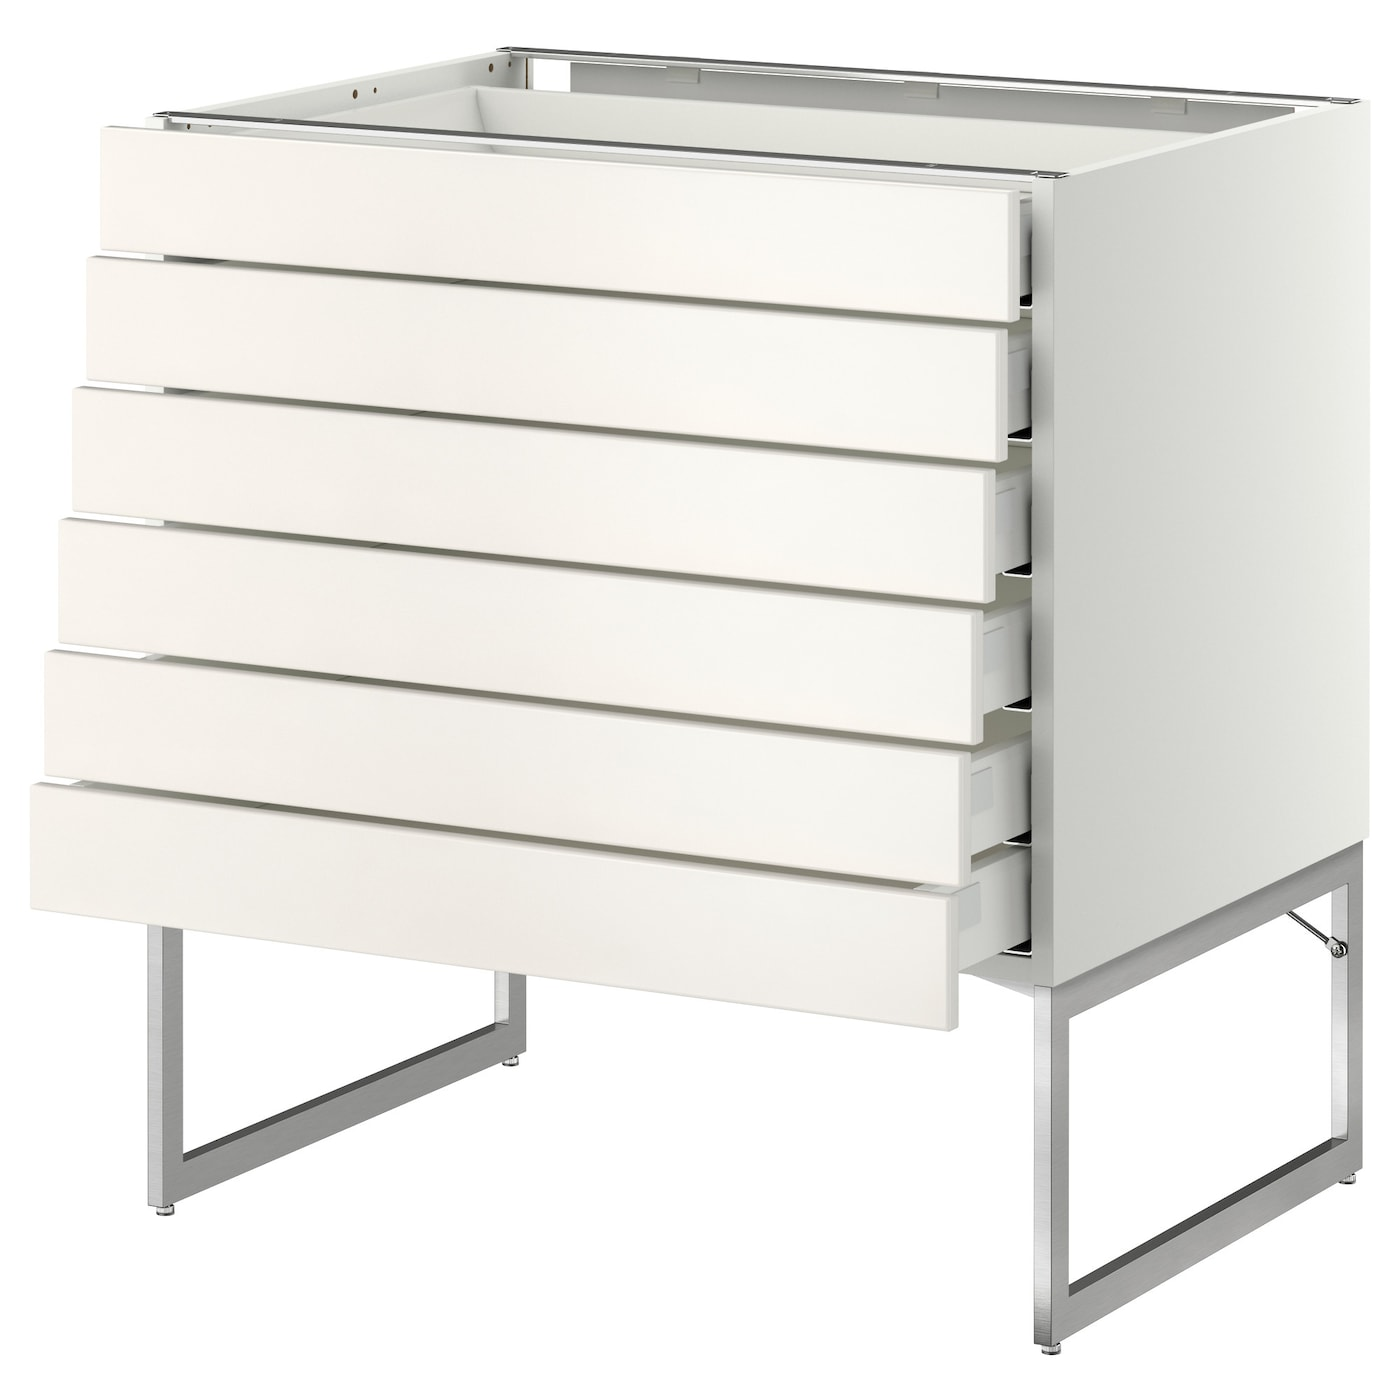 IKEA METOD/MAXIMERA base cabinet 6 fronts/6 low drawers Smooth-running drawers with stop.